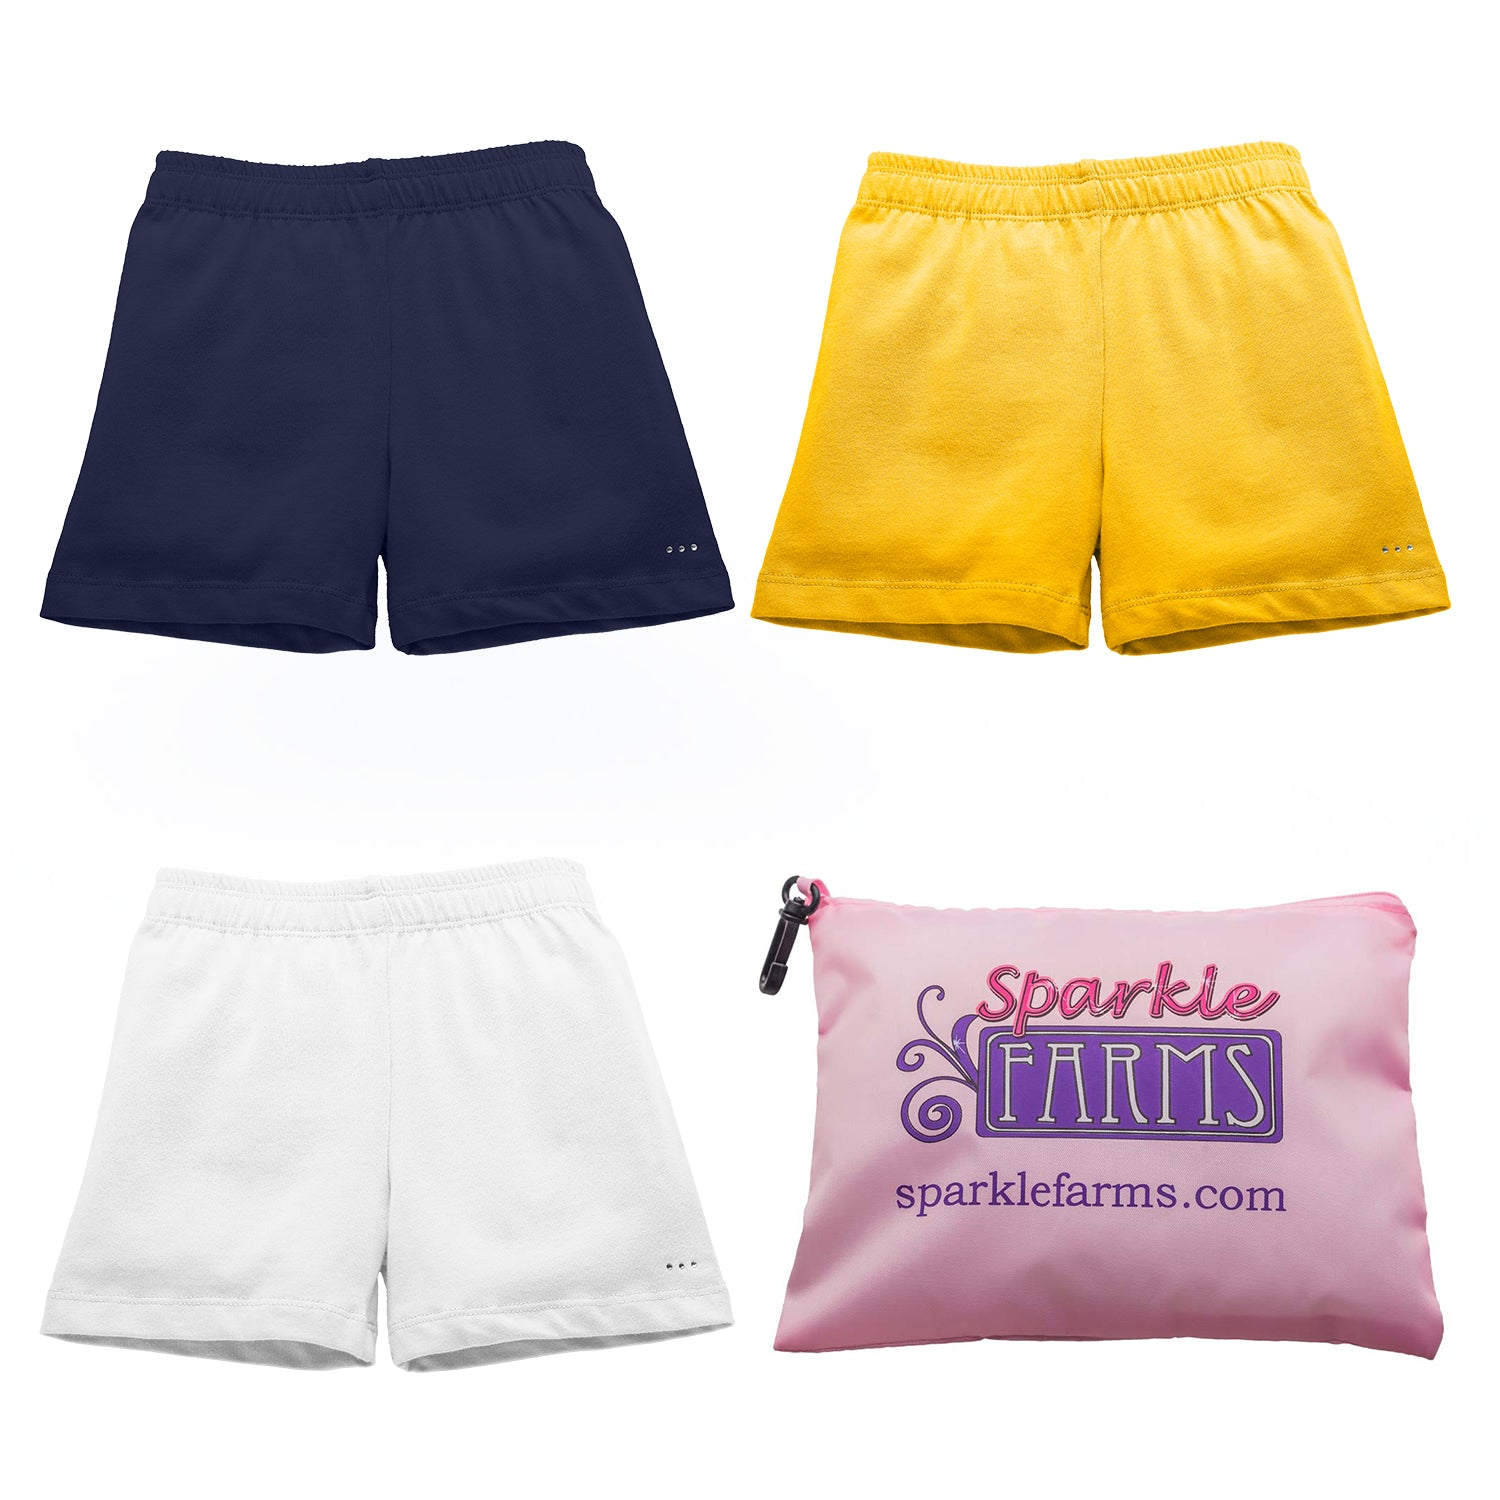 CA University Set - White Navy Golden Yellow - Under Uniform Playground Shorts Set